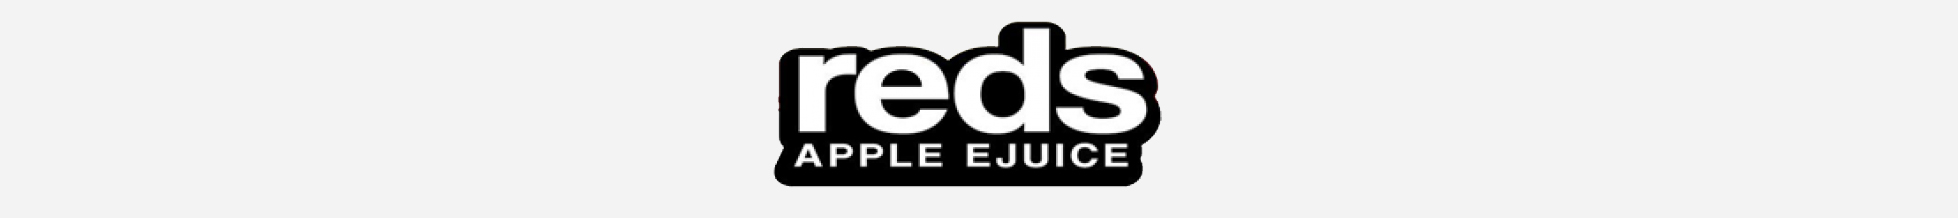 reds-apple-juice-logo.jpg